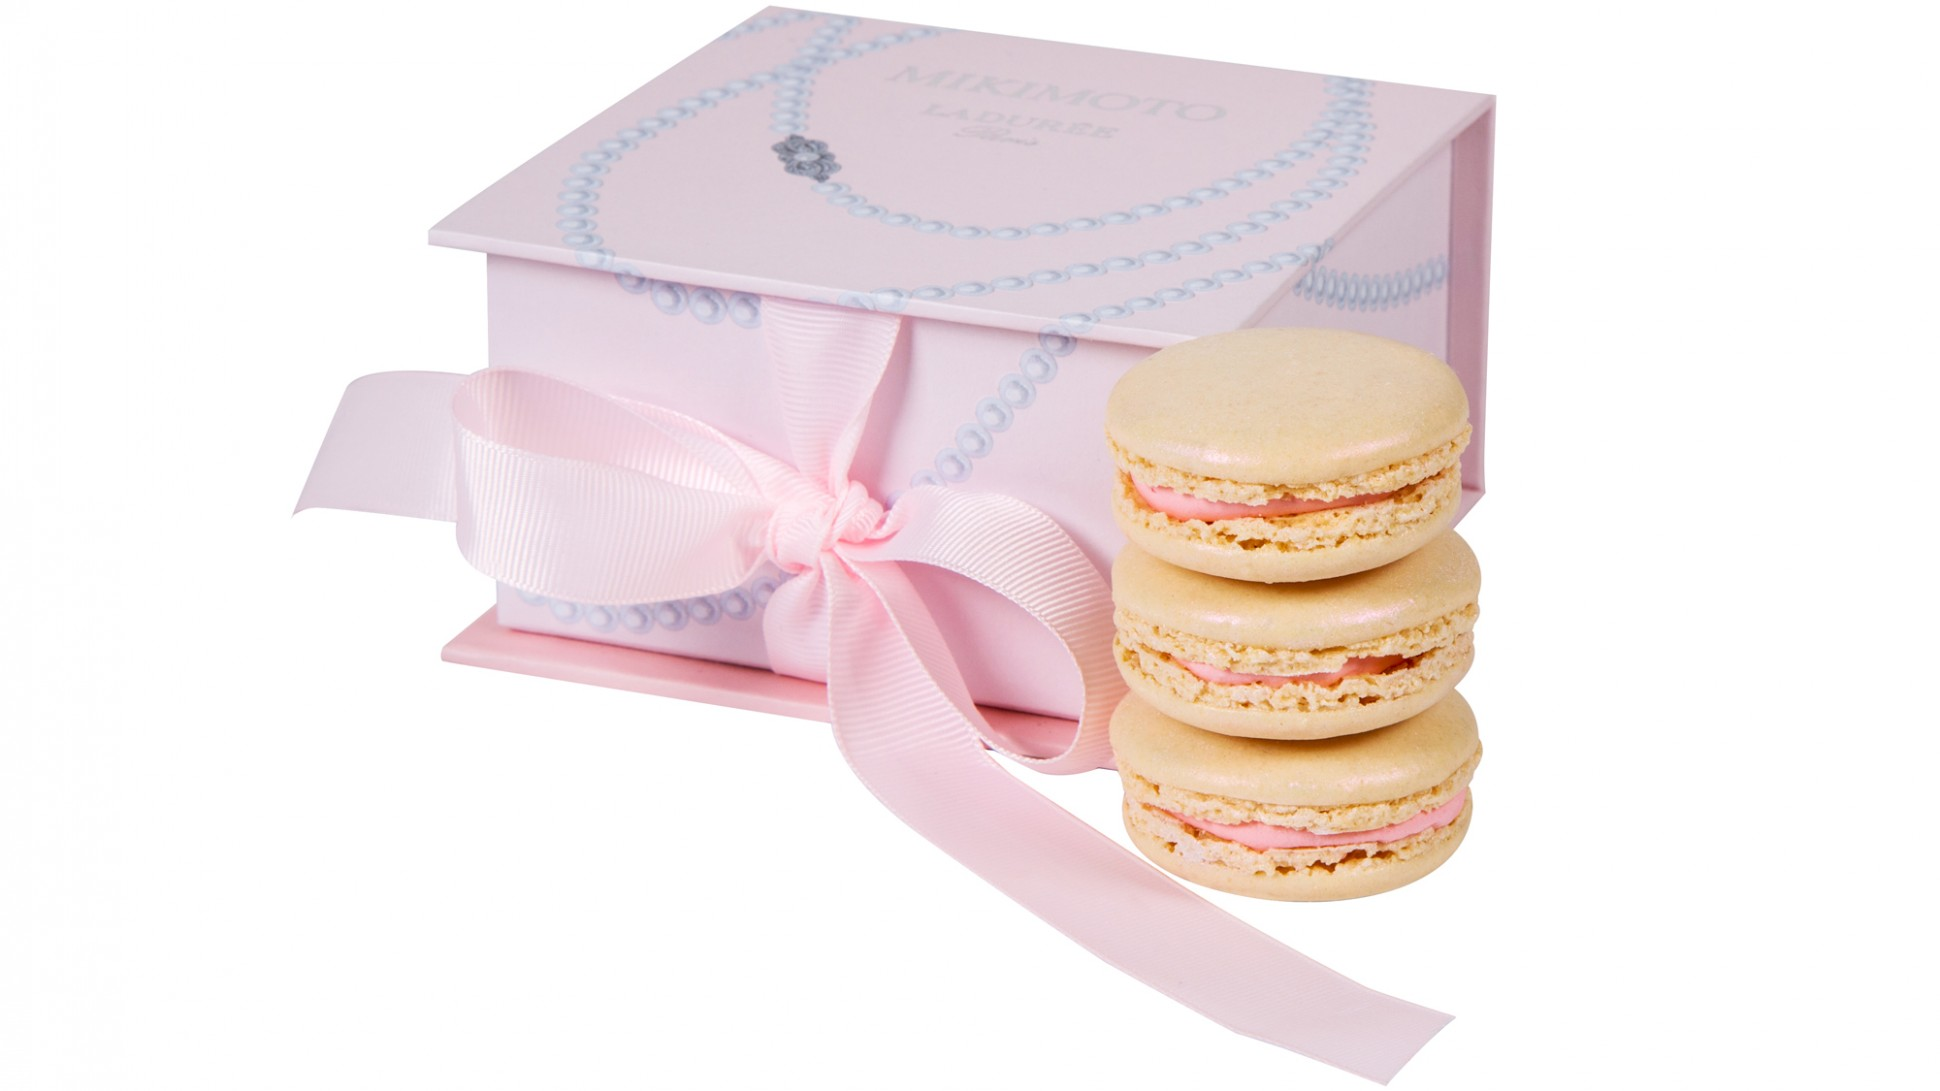 LADUREE_MIKIMOTO_MOTHERS_DAY_GIFT_IDEAS_1-1940x1091